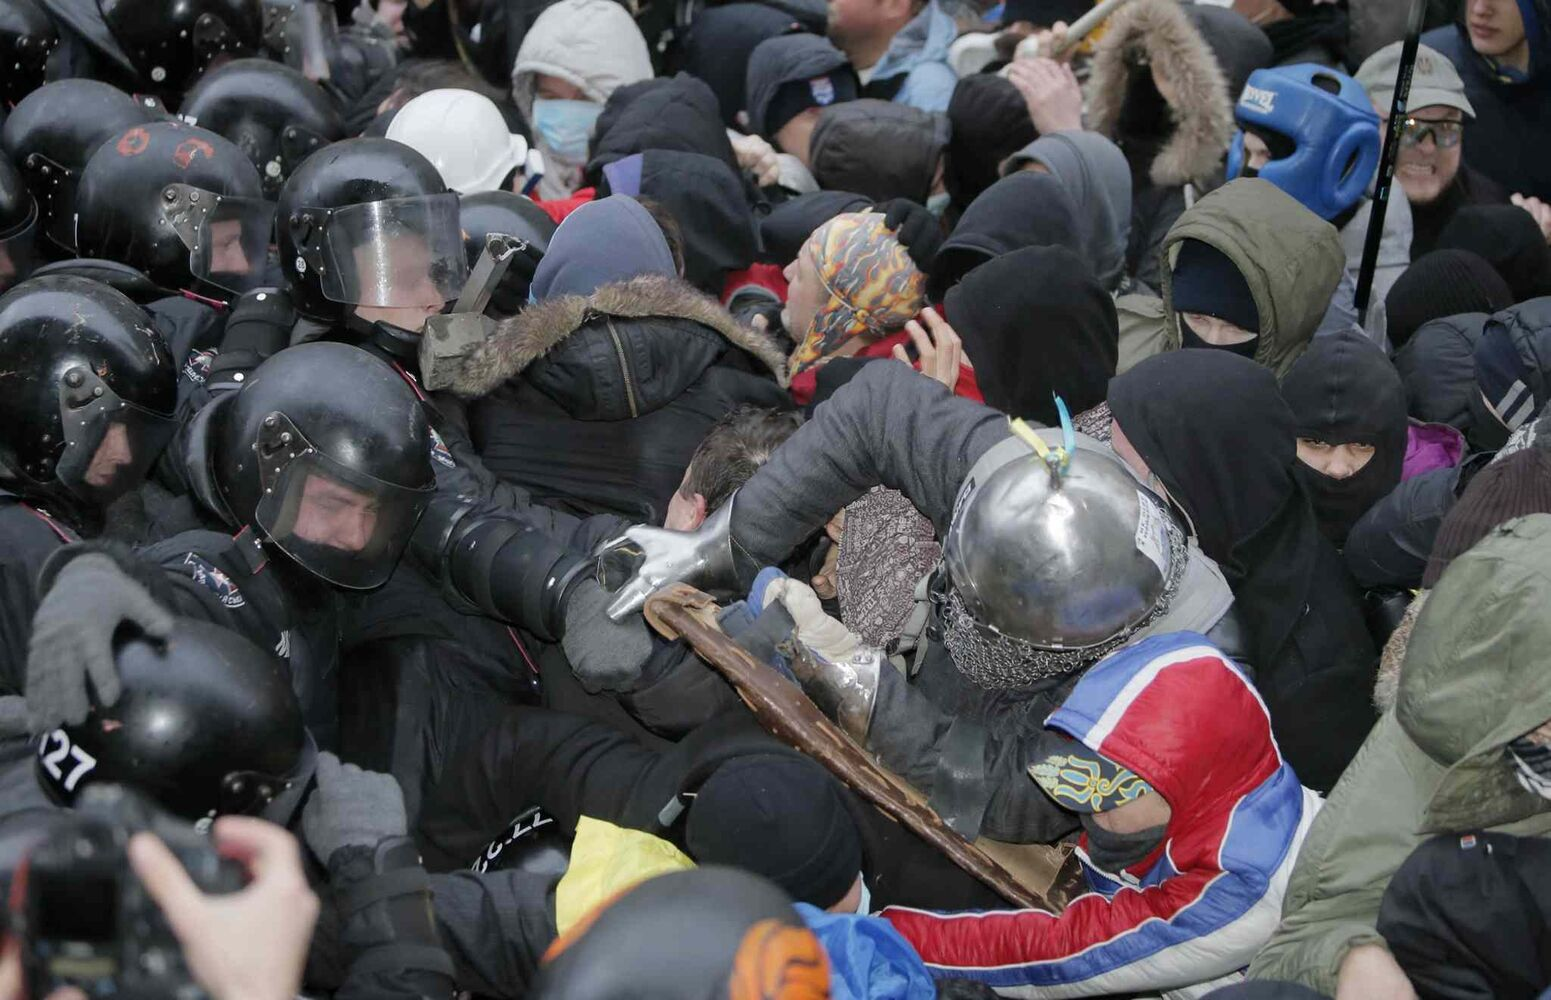 Protesters clash with police at Presidential office in Kiev, Ukraine, on Sunday. As many as 100,000 demonstrators chased away police to rally in the center of Ukraine's capital on Sunday, defying a government ban on protests on Independence Square, in the biggest show of anger over the president's refusal to sign an agreement with the European Union.  (Efrem Lukatsky / The Associated Press)